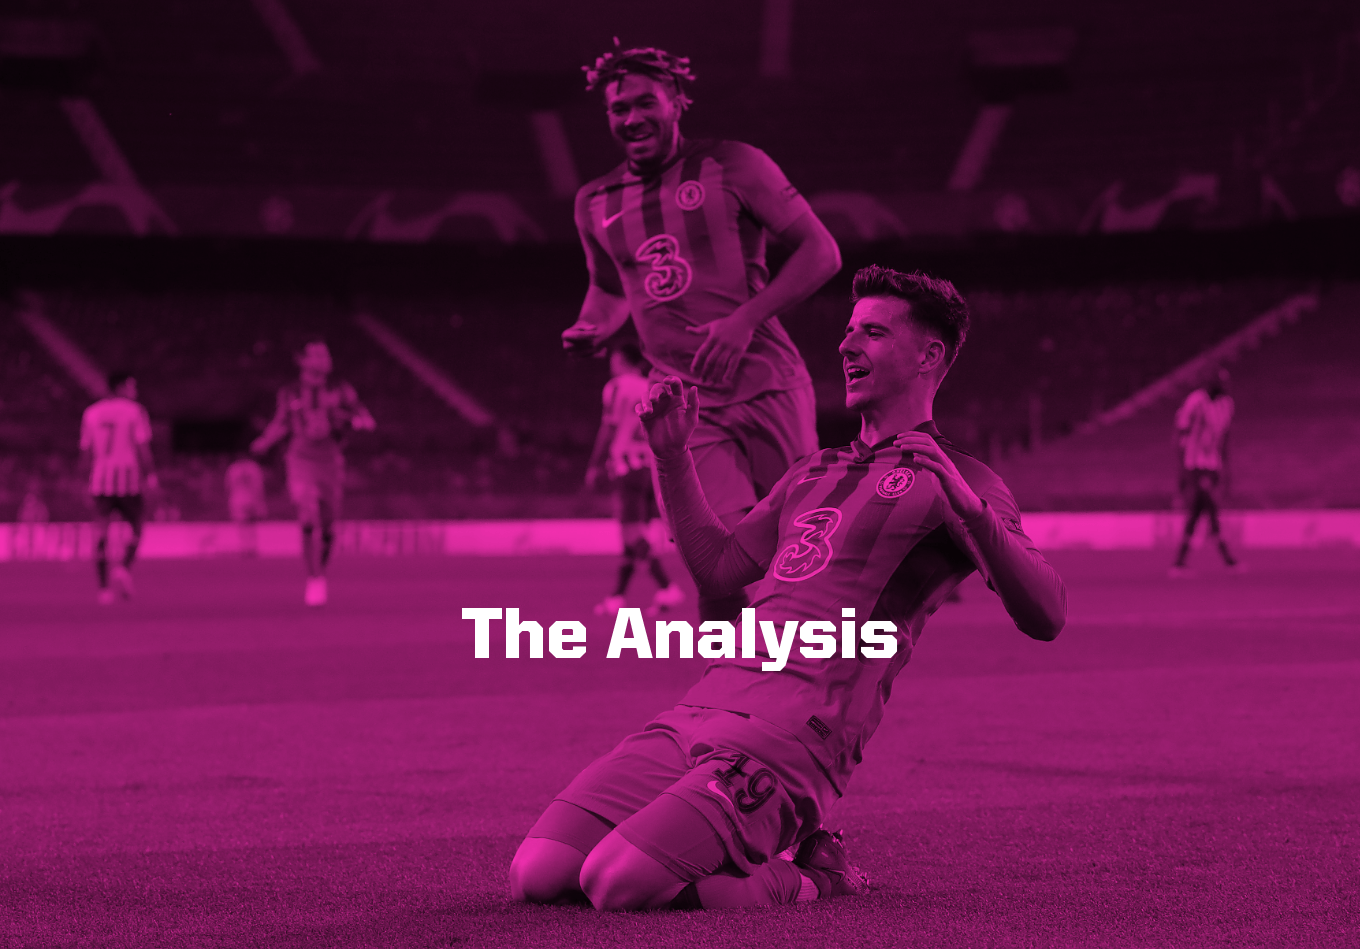 This Week So Far: We All Expect Goals In The Big Games